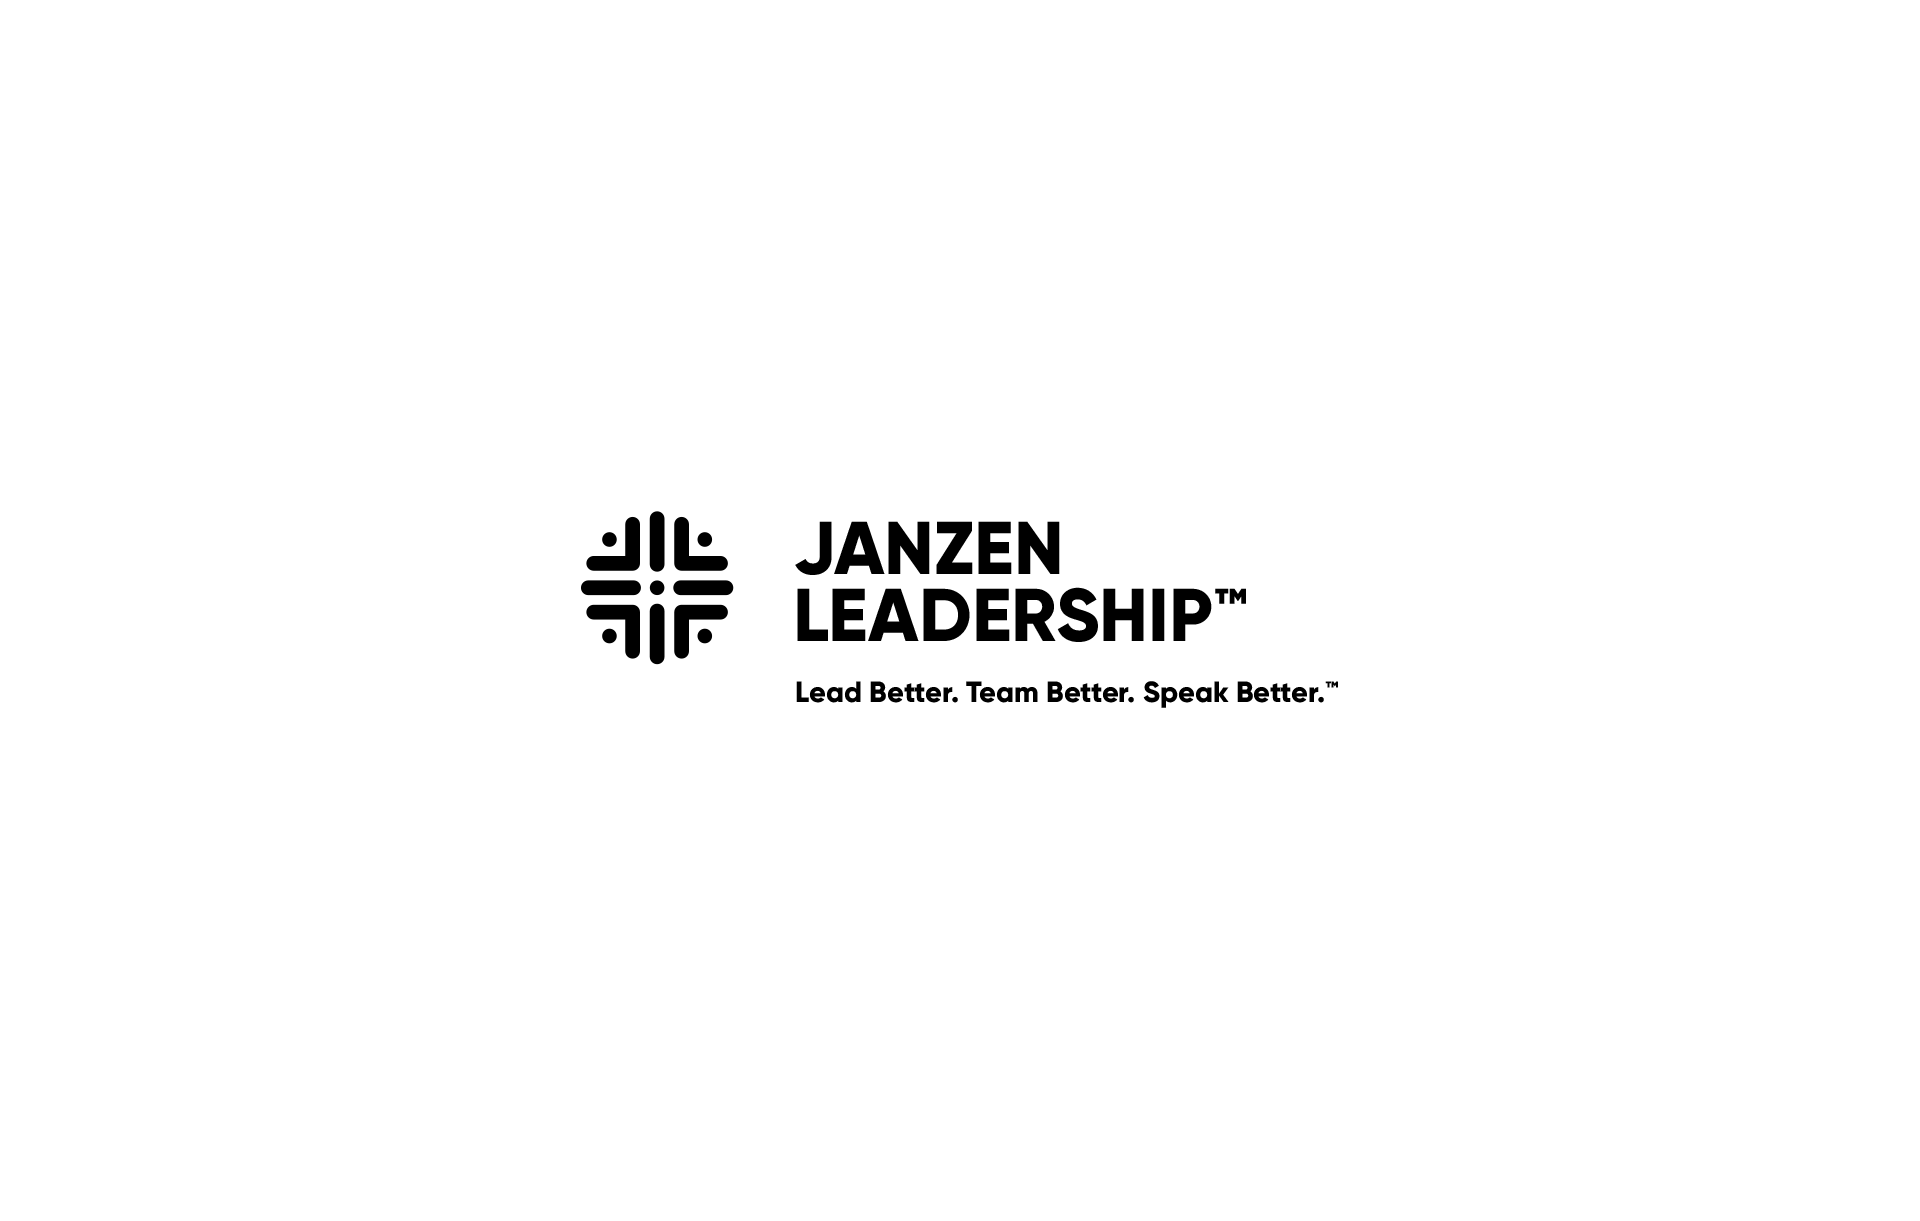 Janzen Leadership Logo Design By Scott Luscombe